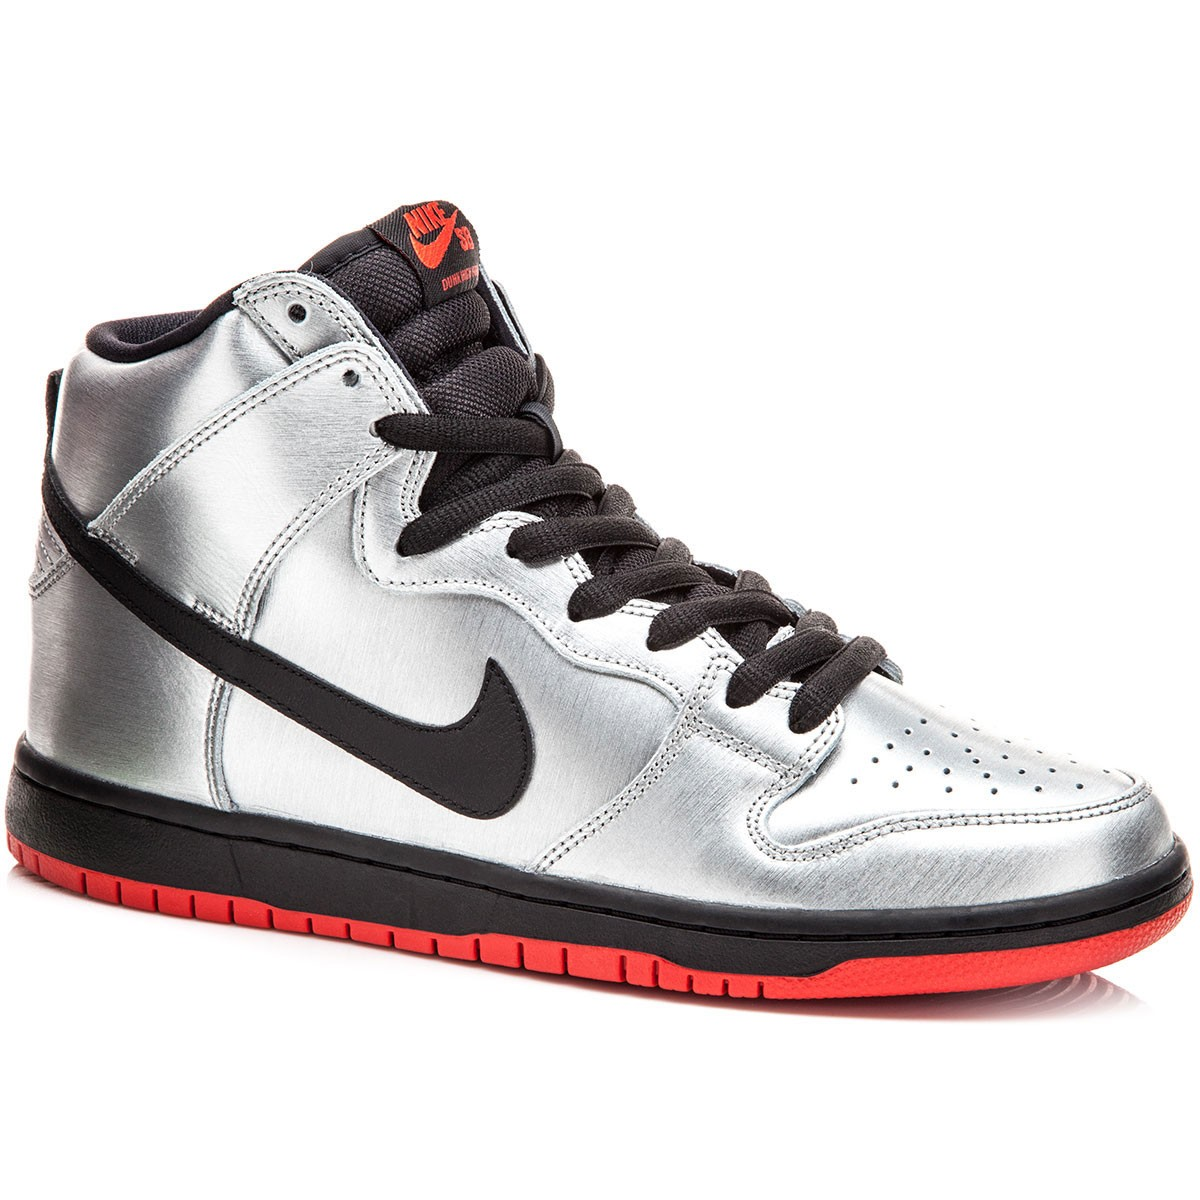 official photos ec347 179dd Nike Dunk High Pro SB Shoes - BlackBlackRed - 10